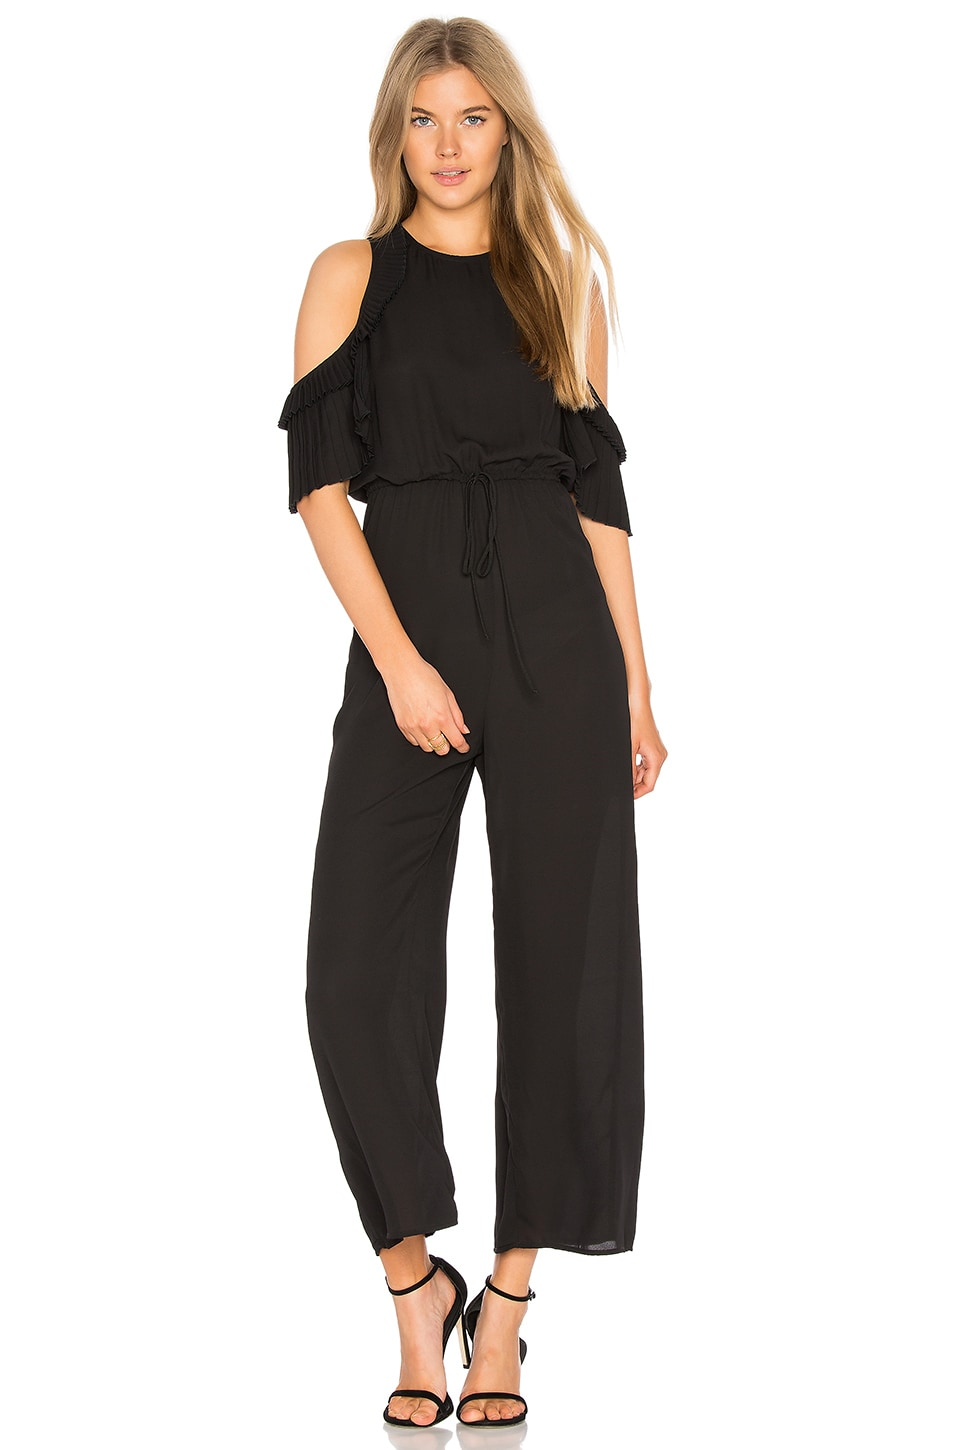 DELFI Evie Jumpsuit in Black